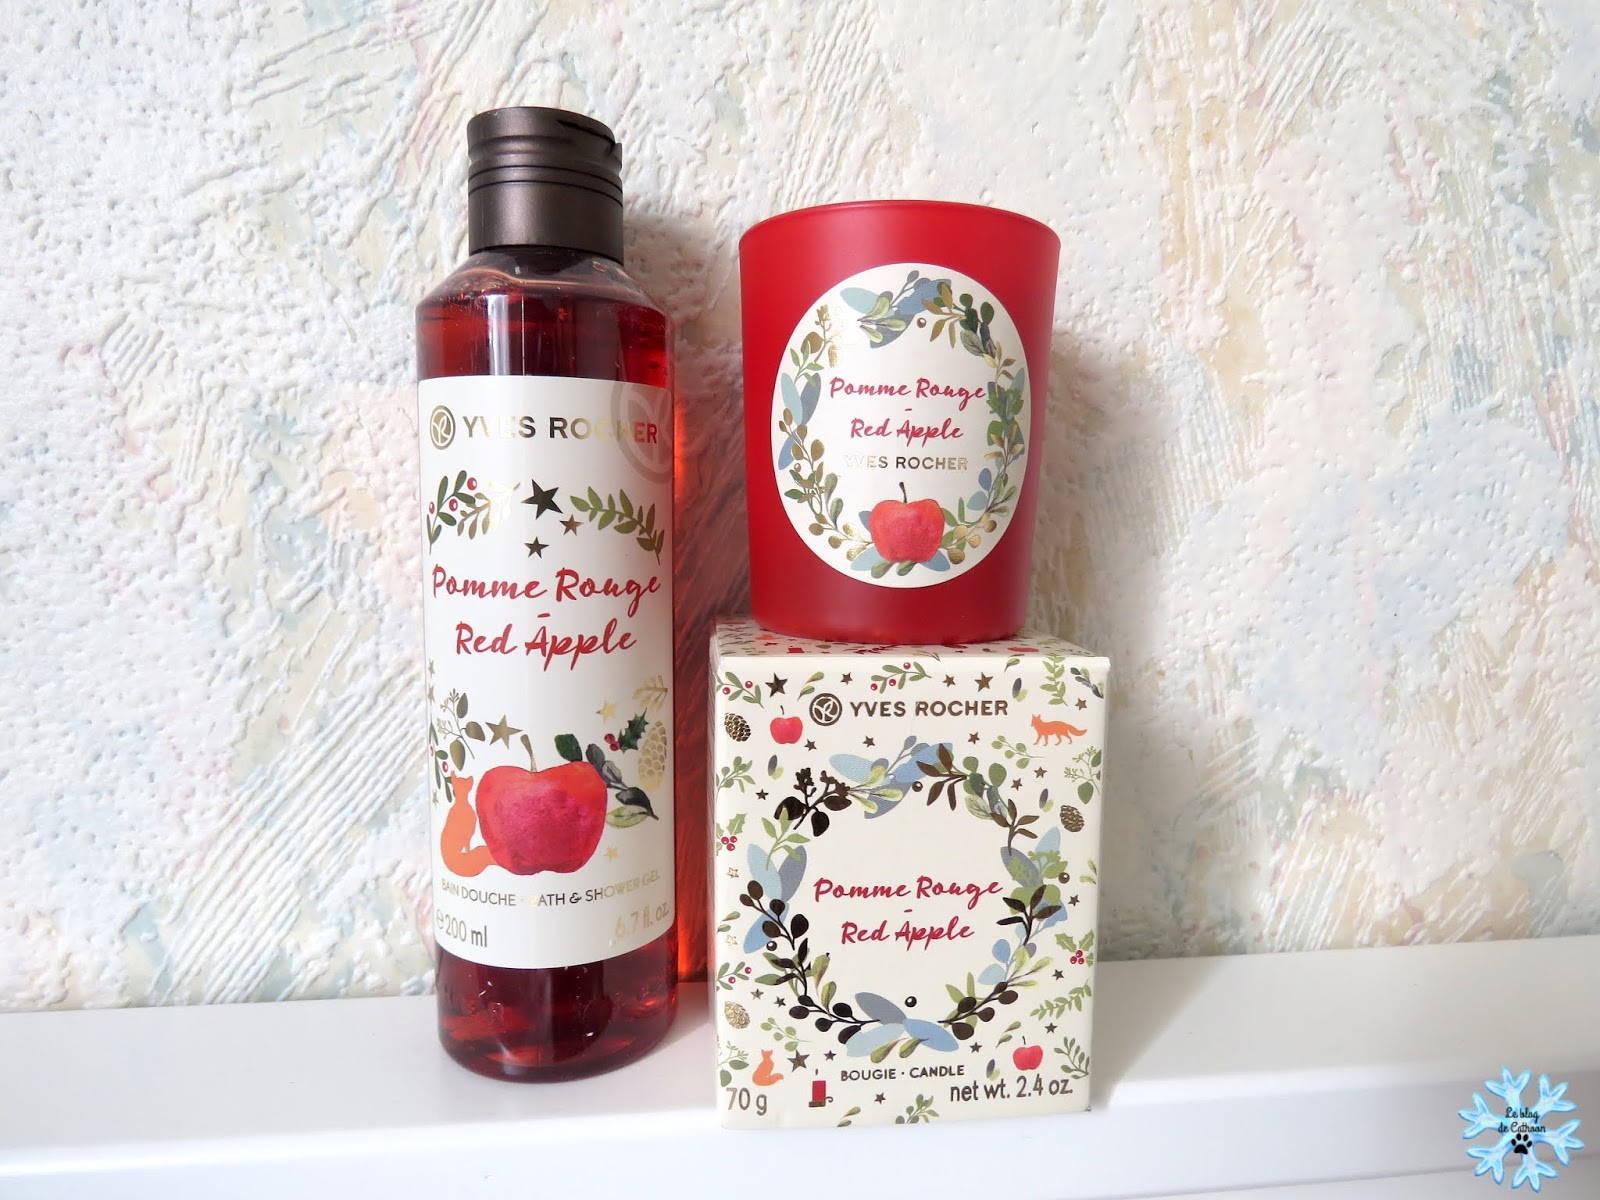 Pomme Rouge - Red Apple - Bougie - Yves Rocher